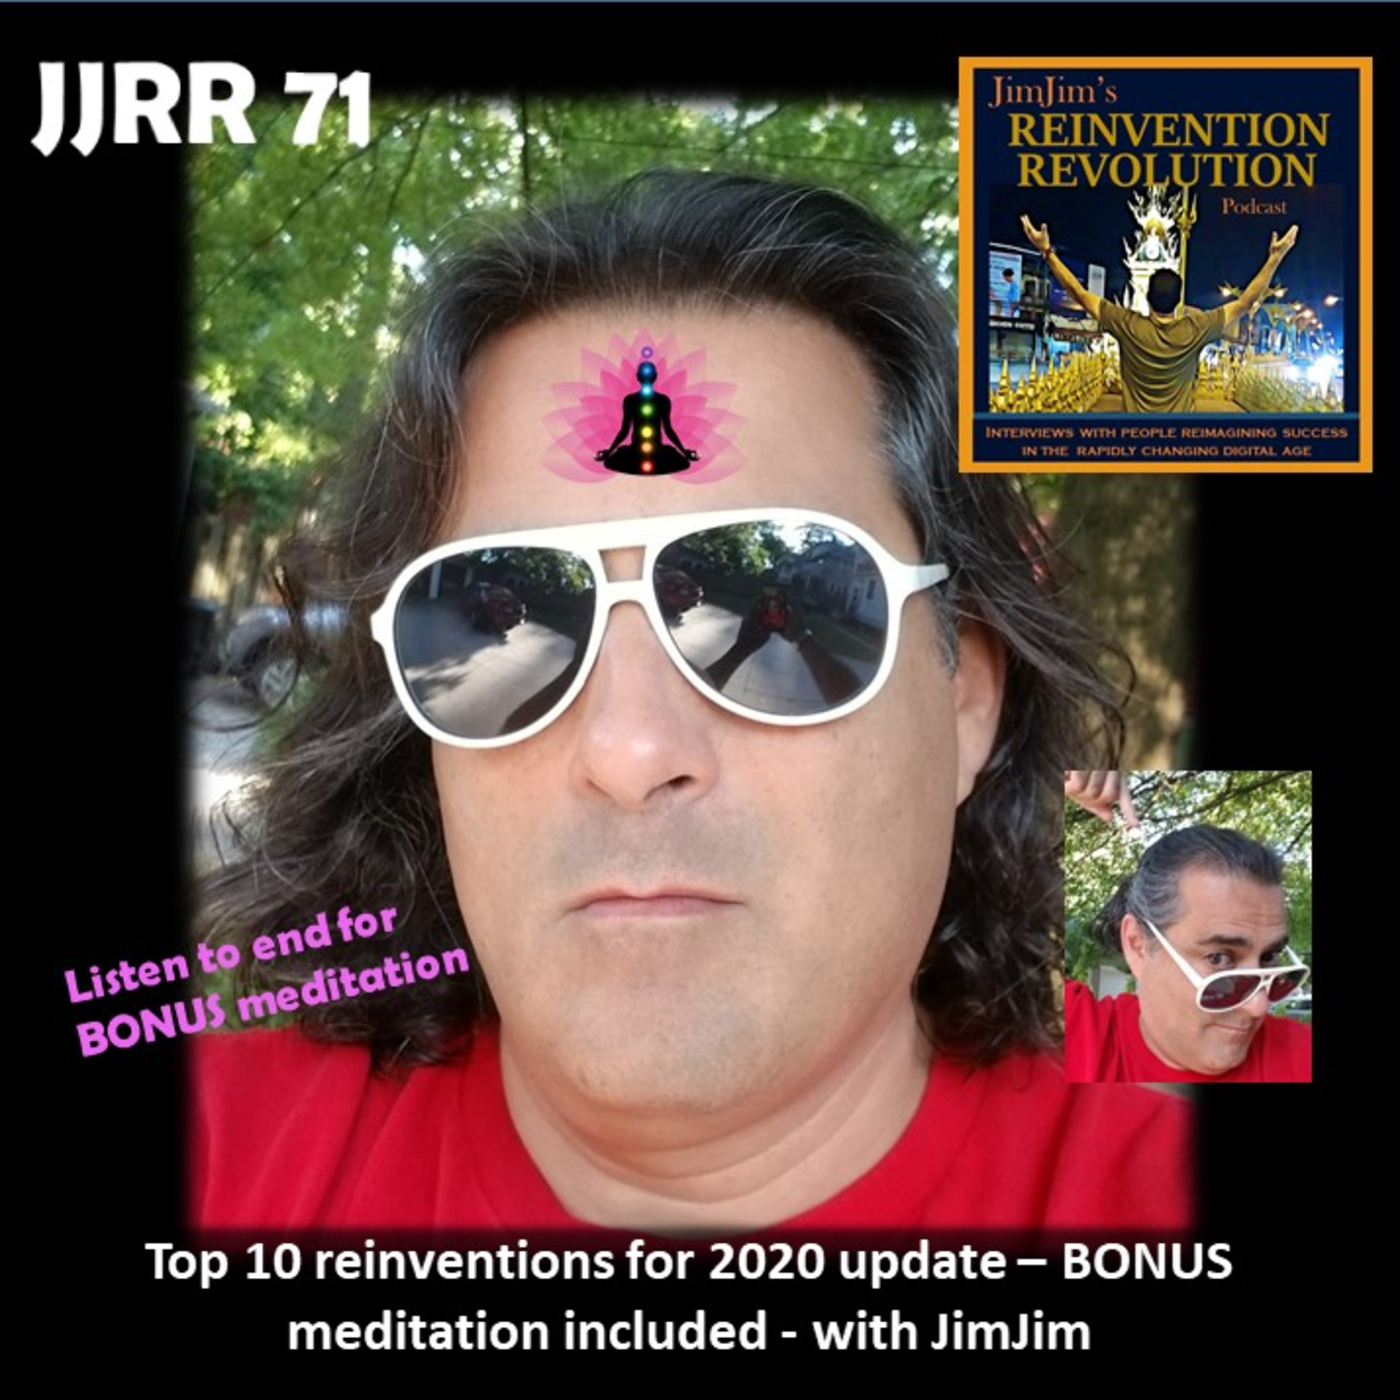 JJRR 71 Top 10 Reinventions for 2020 mid year update – BONUS meditation included – with JimJim